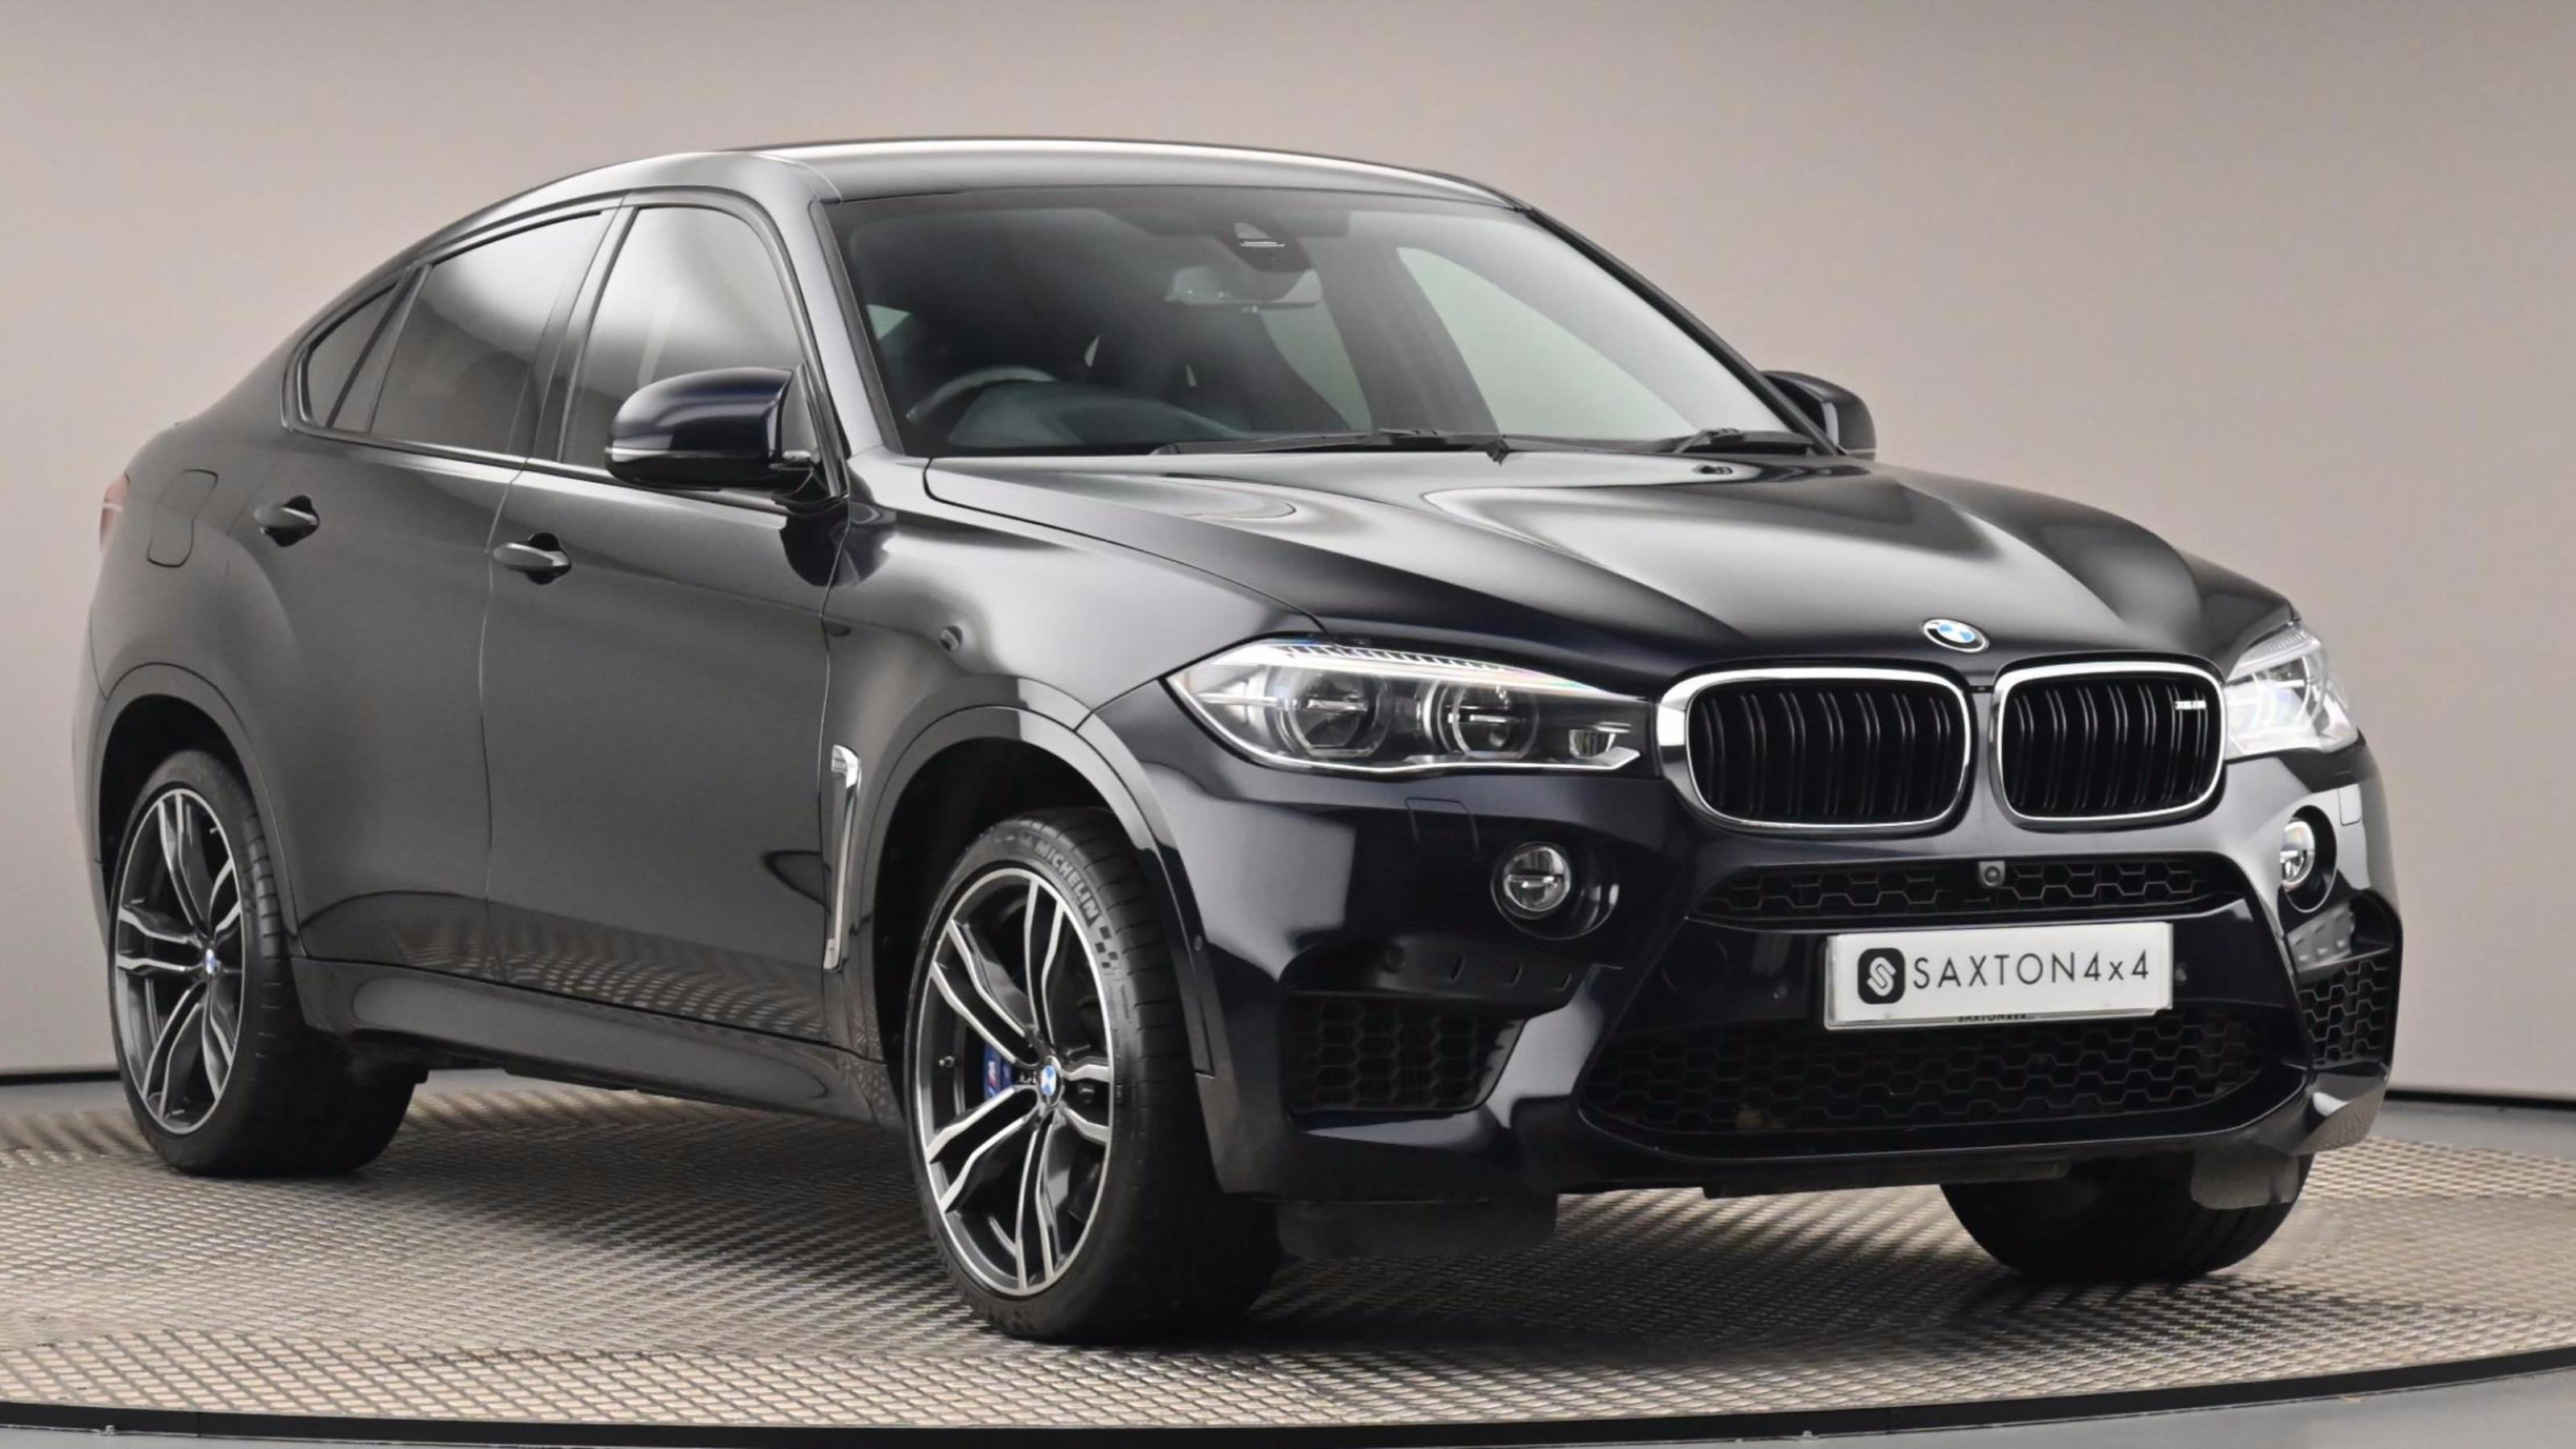 Used 2018 BMW X6 M xDrive X6 M 5dr Auto Black at Saxton4x4